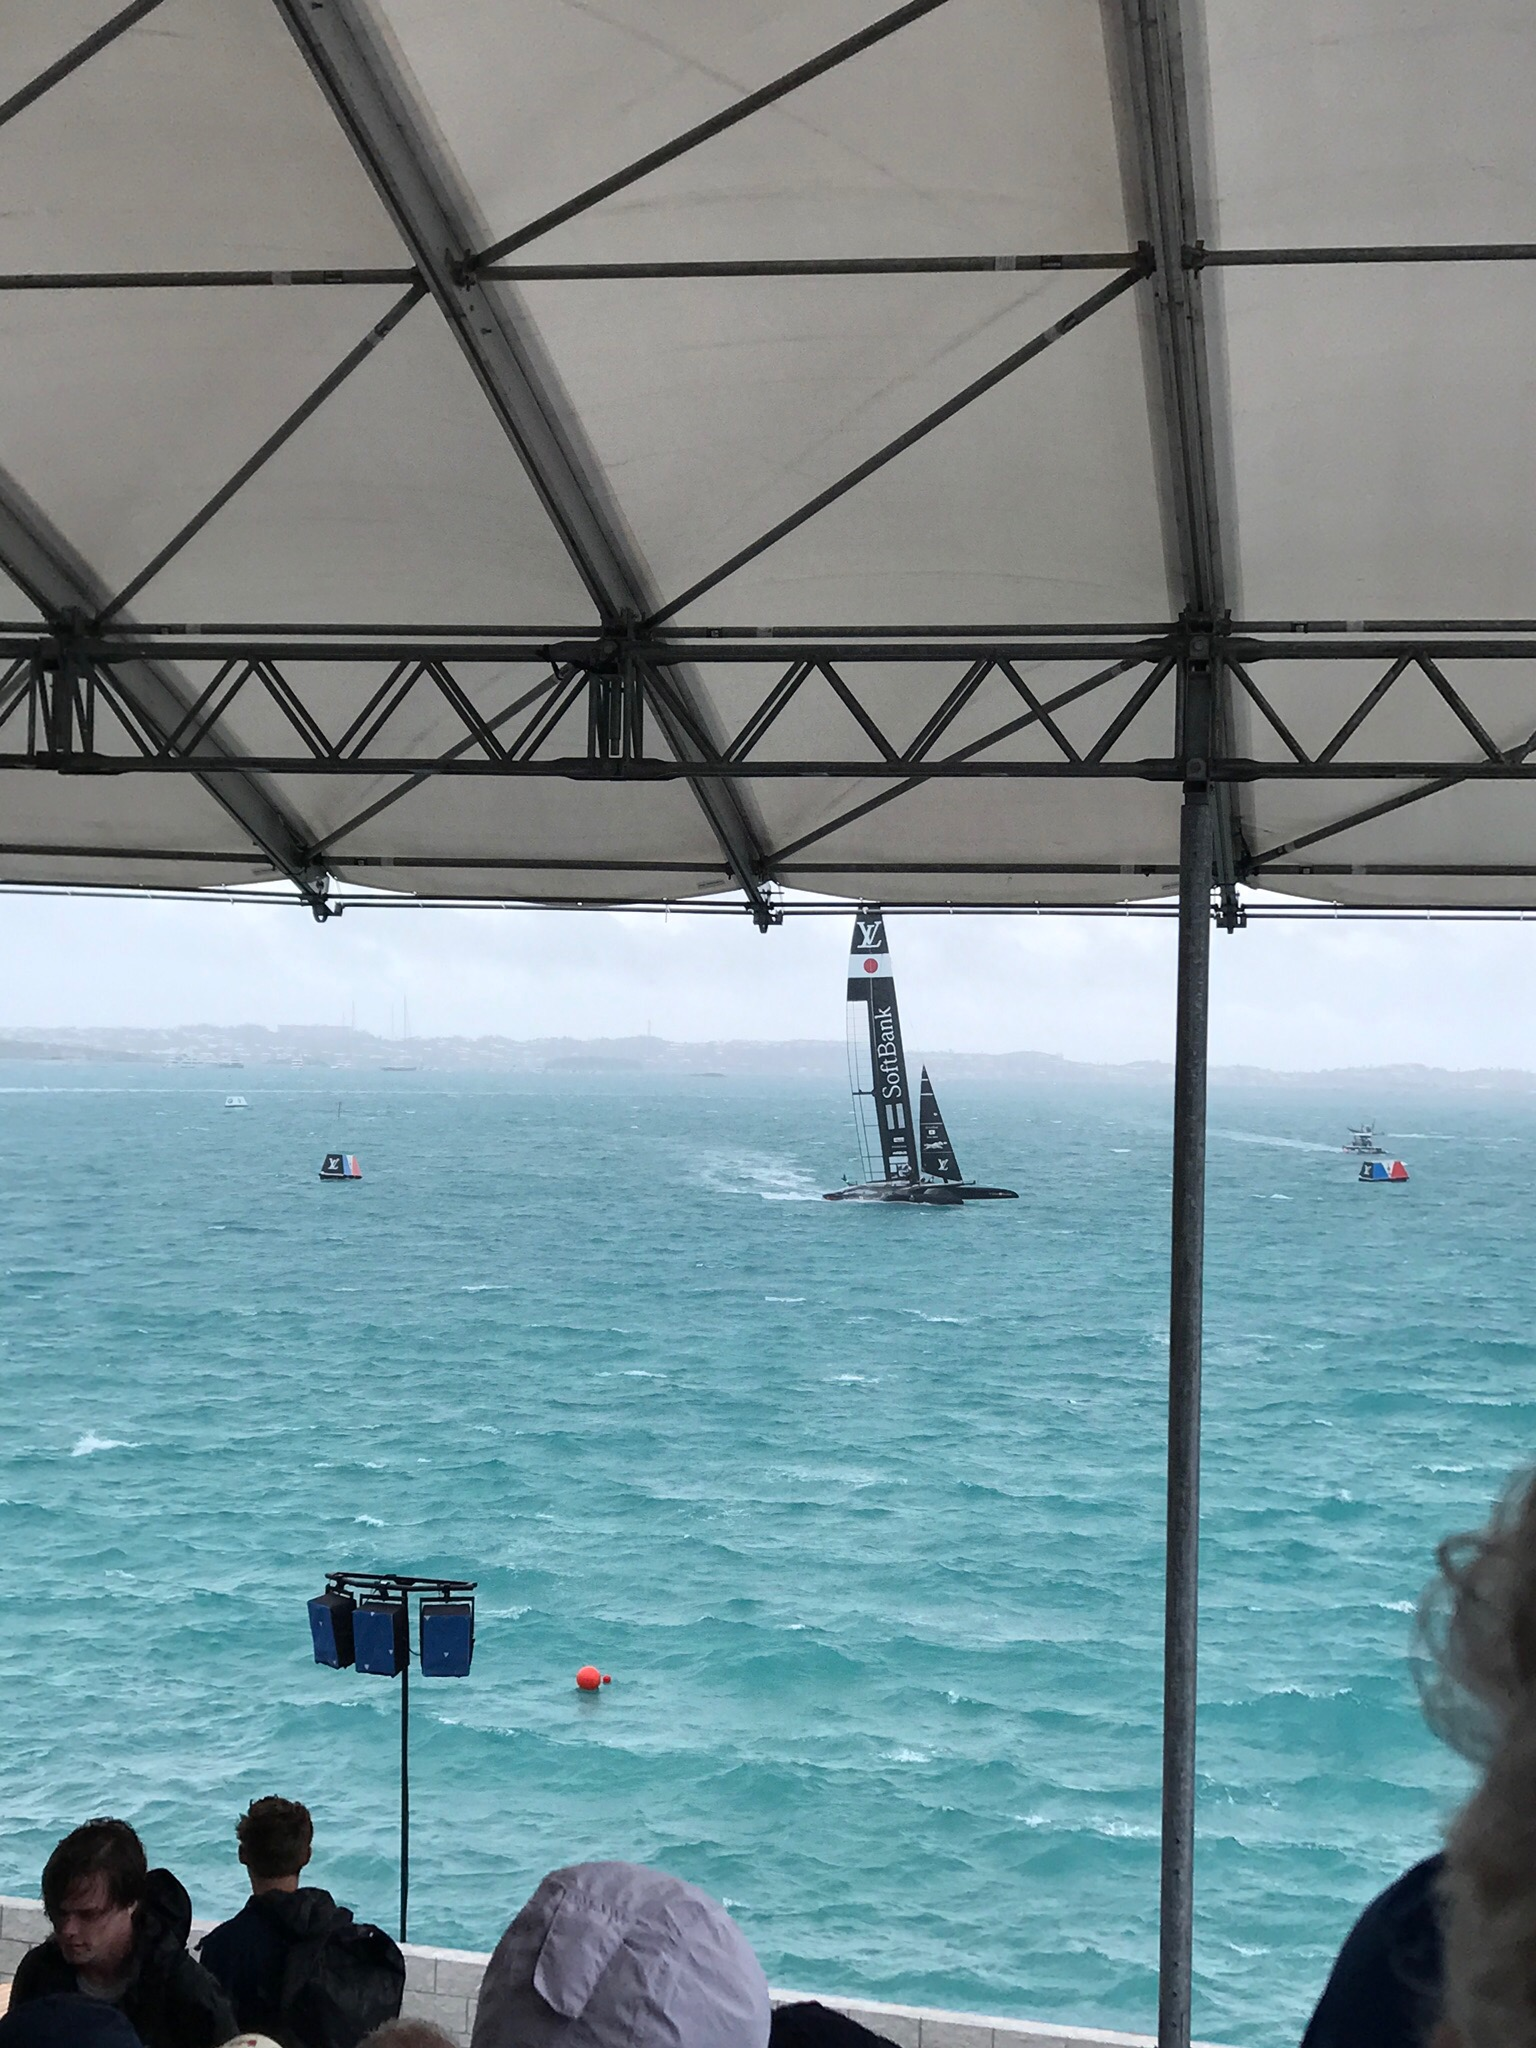 America's Cup Bermuda Grand Stand Seating View